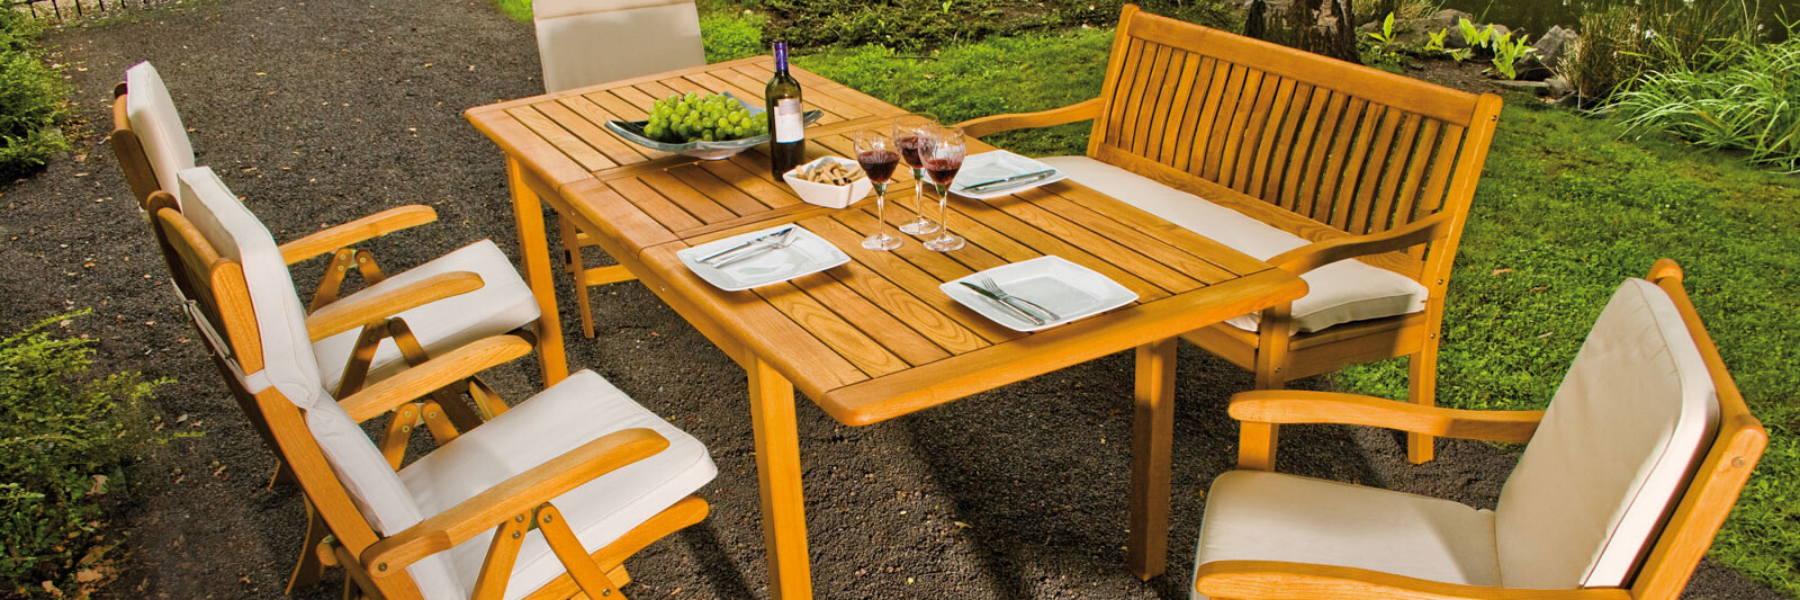 <p>Outdoor Furniture Wooden Dining Collection Amalfi.</p> <p> </p> <p>Relaxed Alfresco Dining Venue Furniture.</p> <p> </p> <p>Wooden Outdoor Dining Furniture includes armchairs, benches, tables of varying sizes. Warm, comfortable & durable in all weathers.</p>